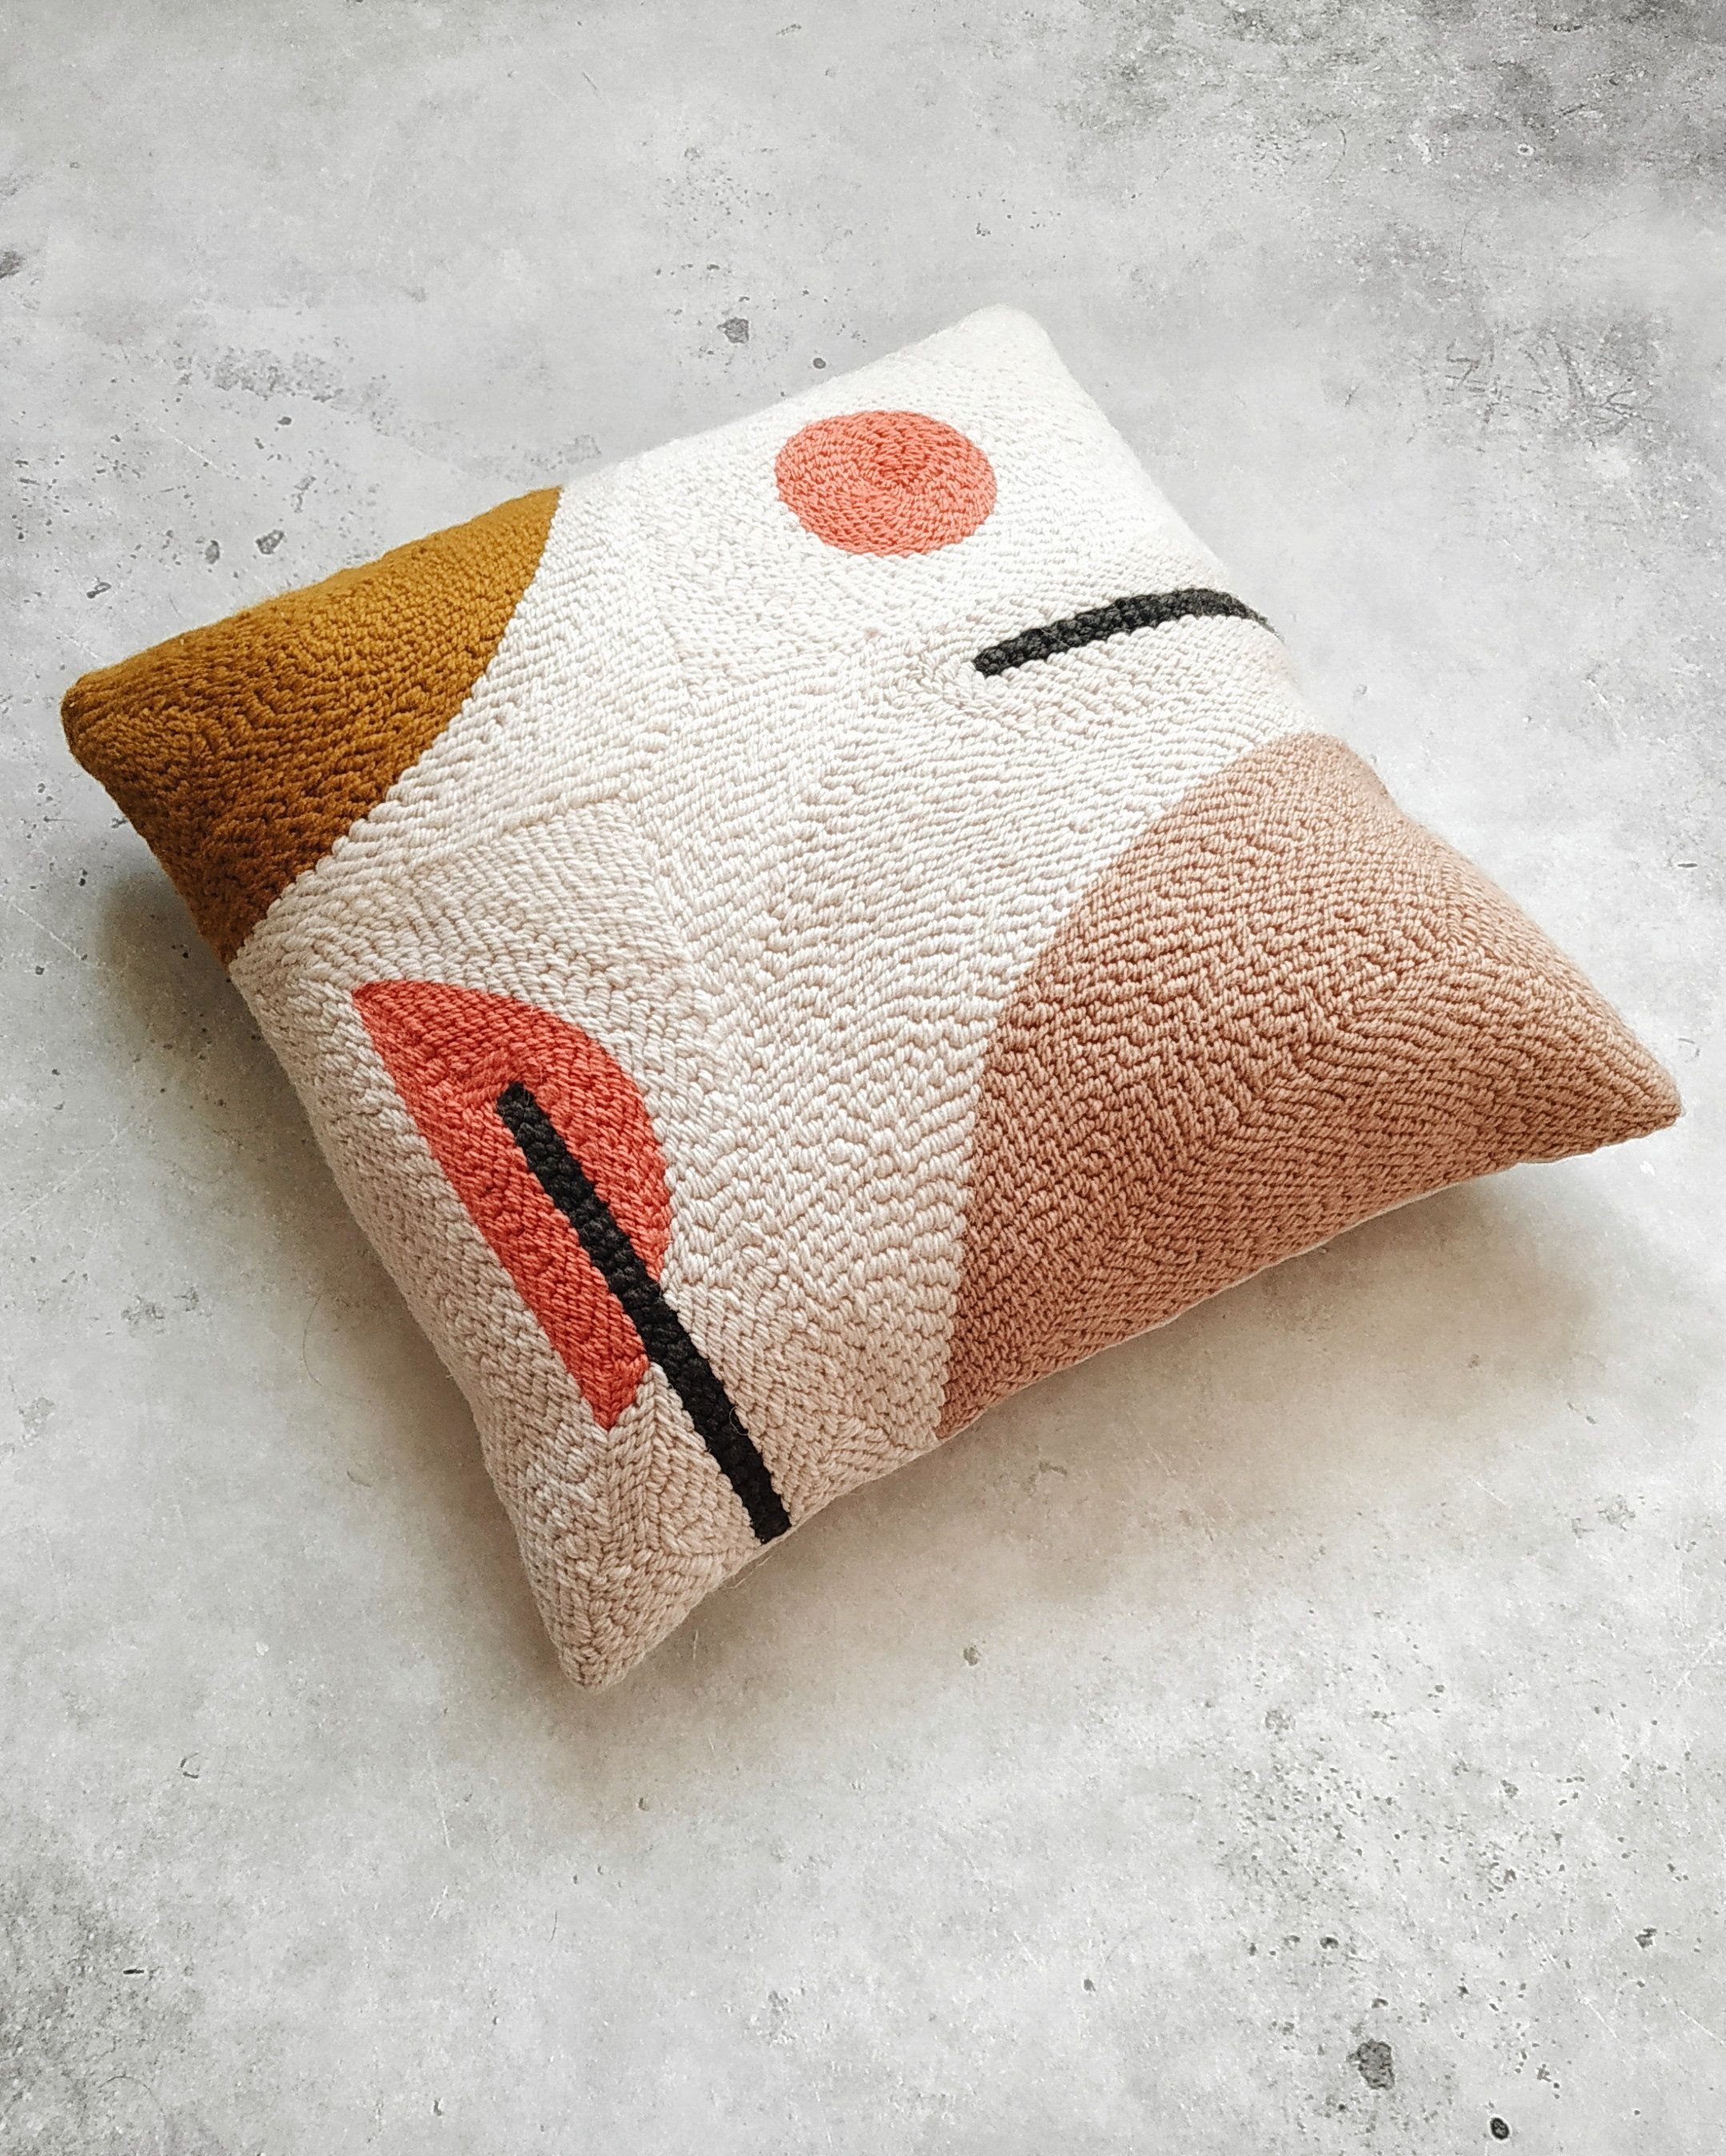 Modern Abstract Punchneedle Pillowcase Beige Mustard And Coral